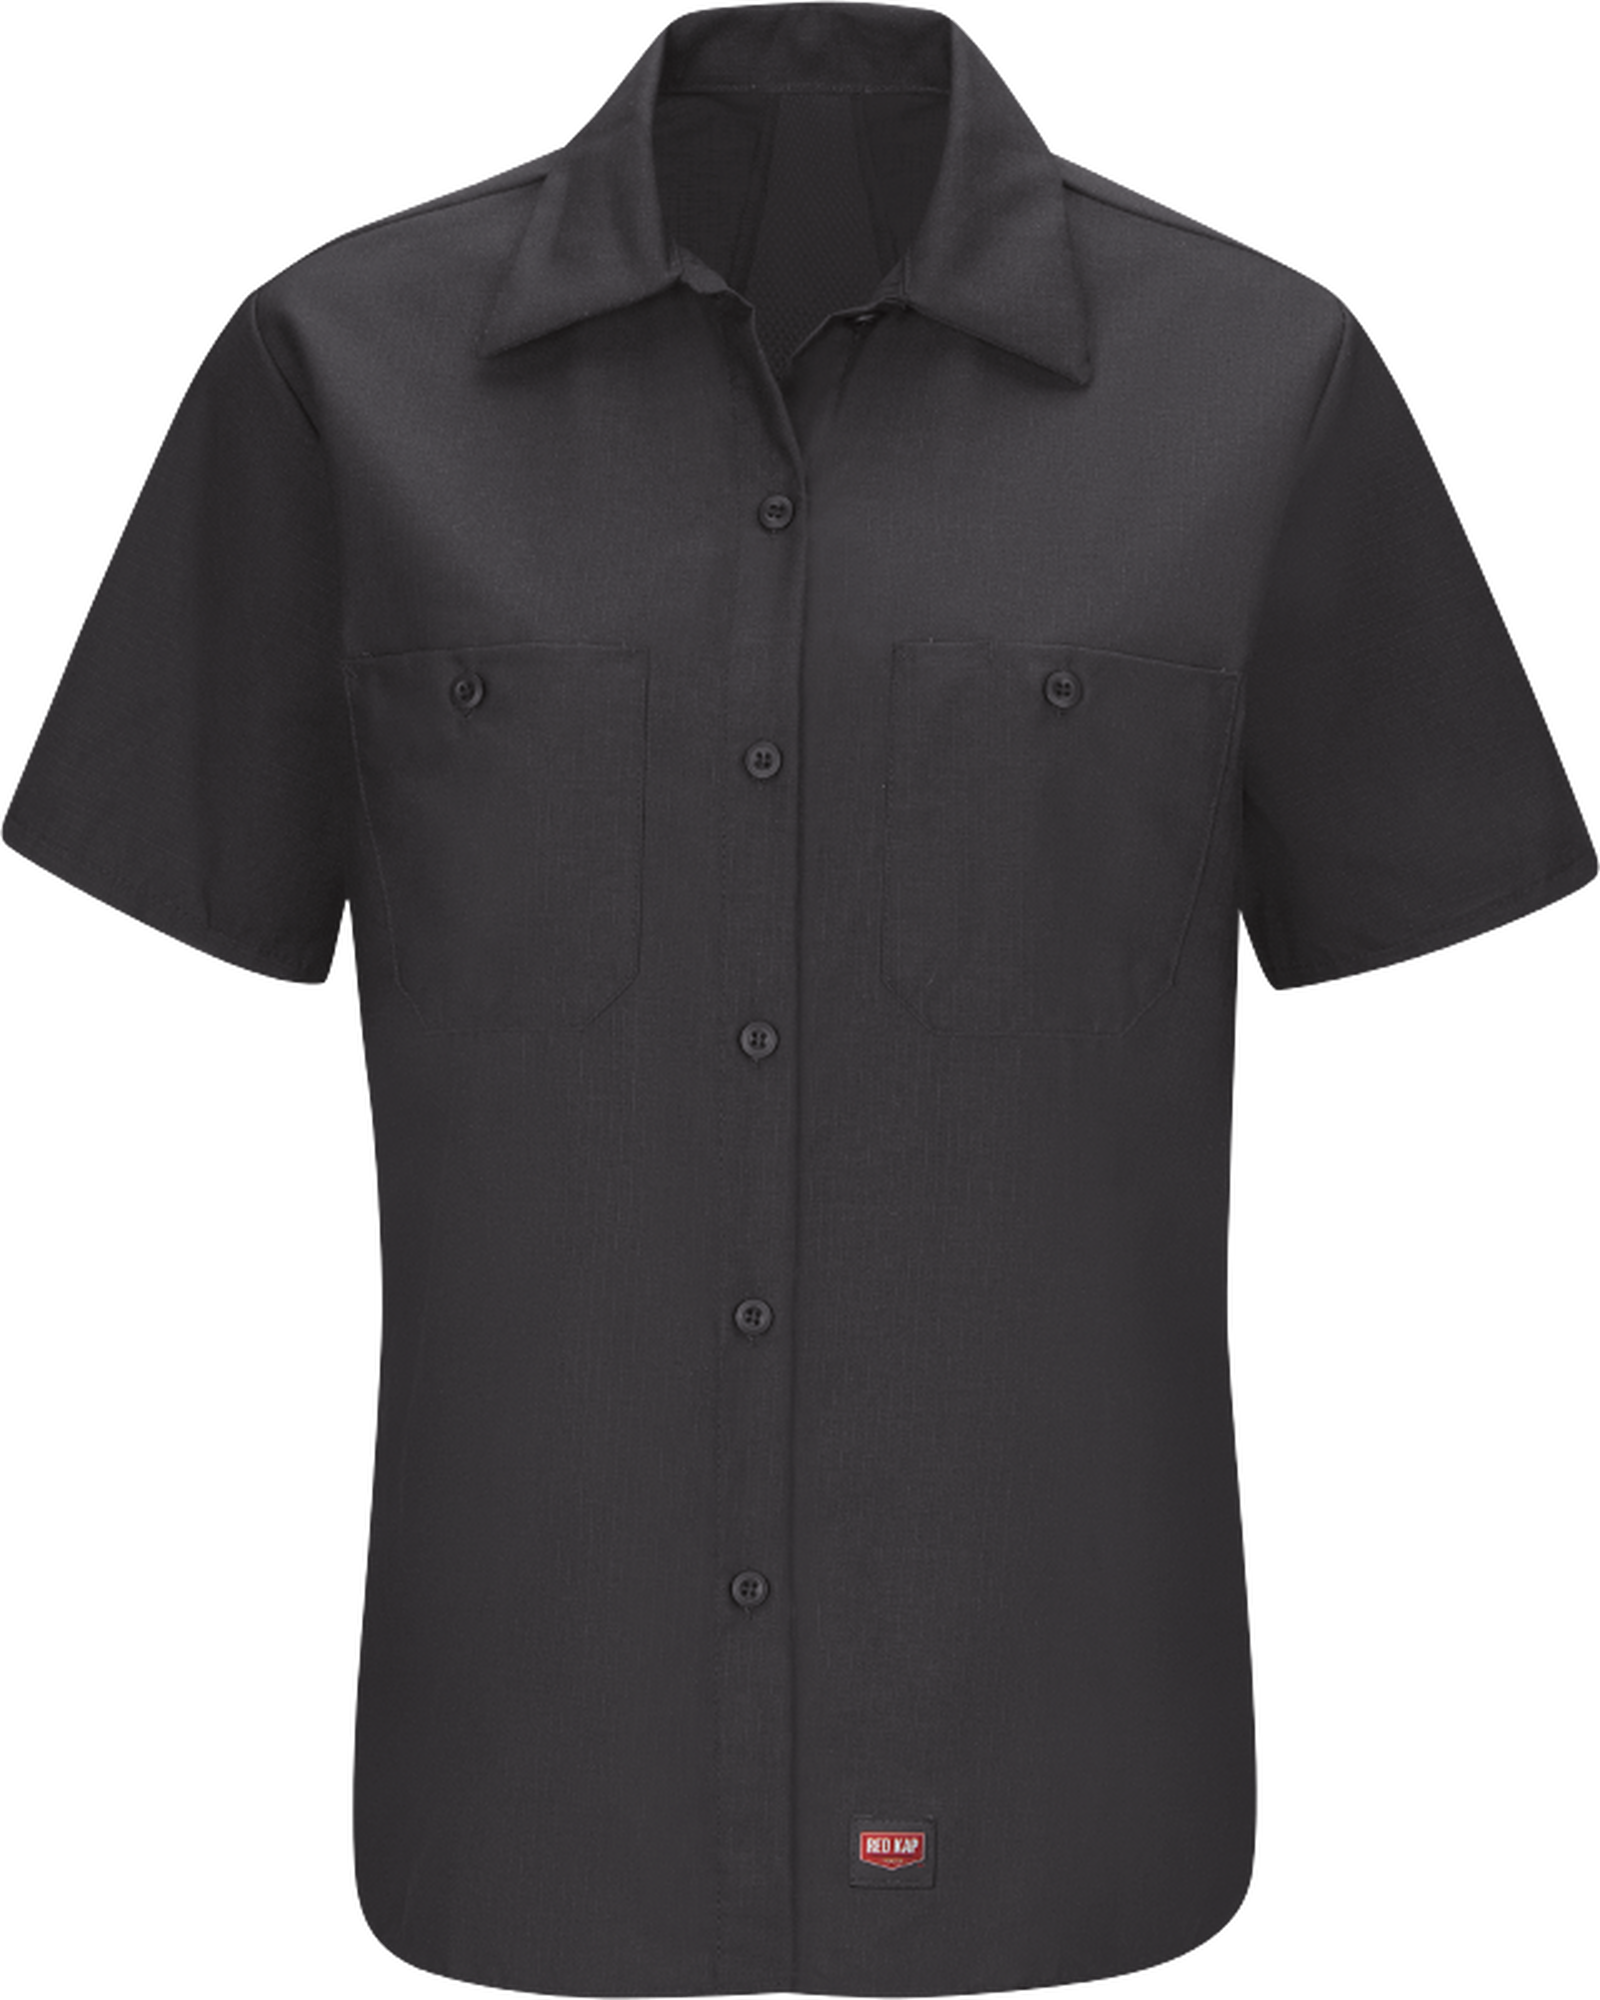 Women's Short Sleeve MIMIX™ Work Shirt